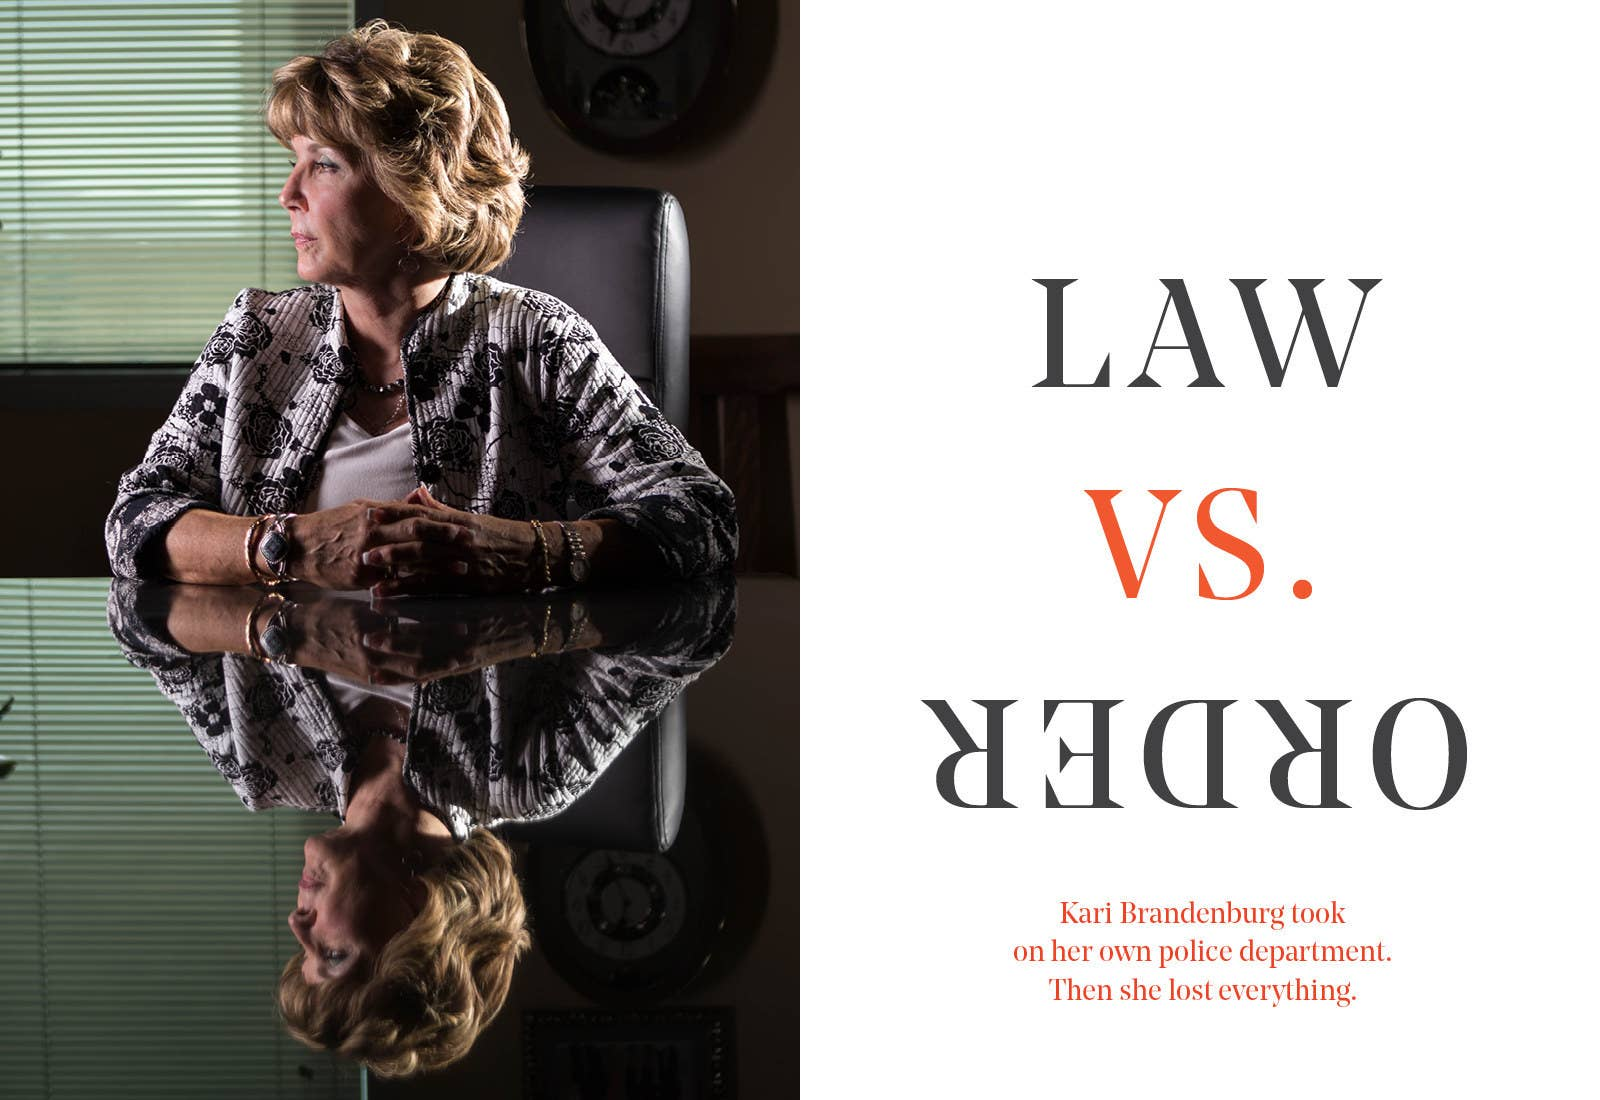 Law Vs  Order: How An Albuquerque DA Took On Her Own Police